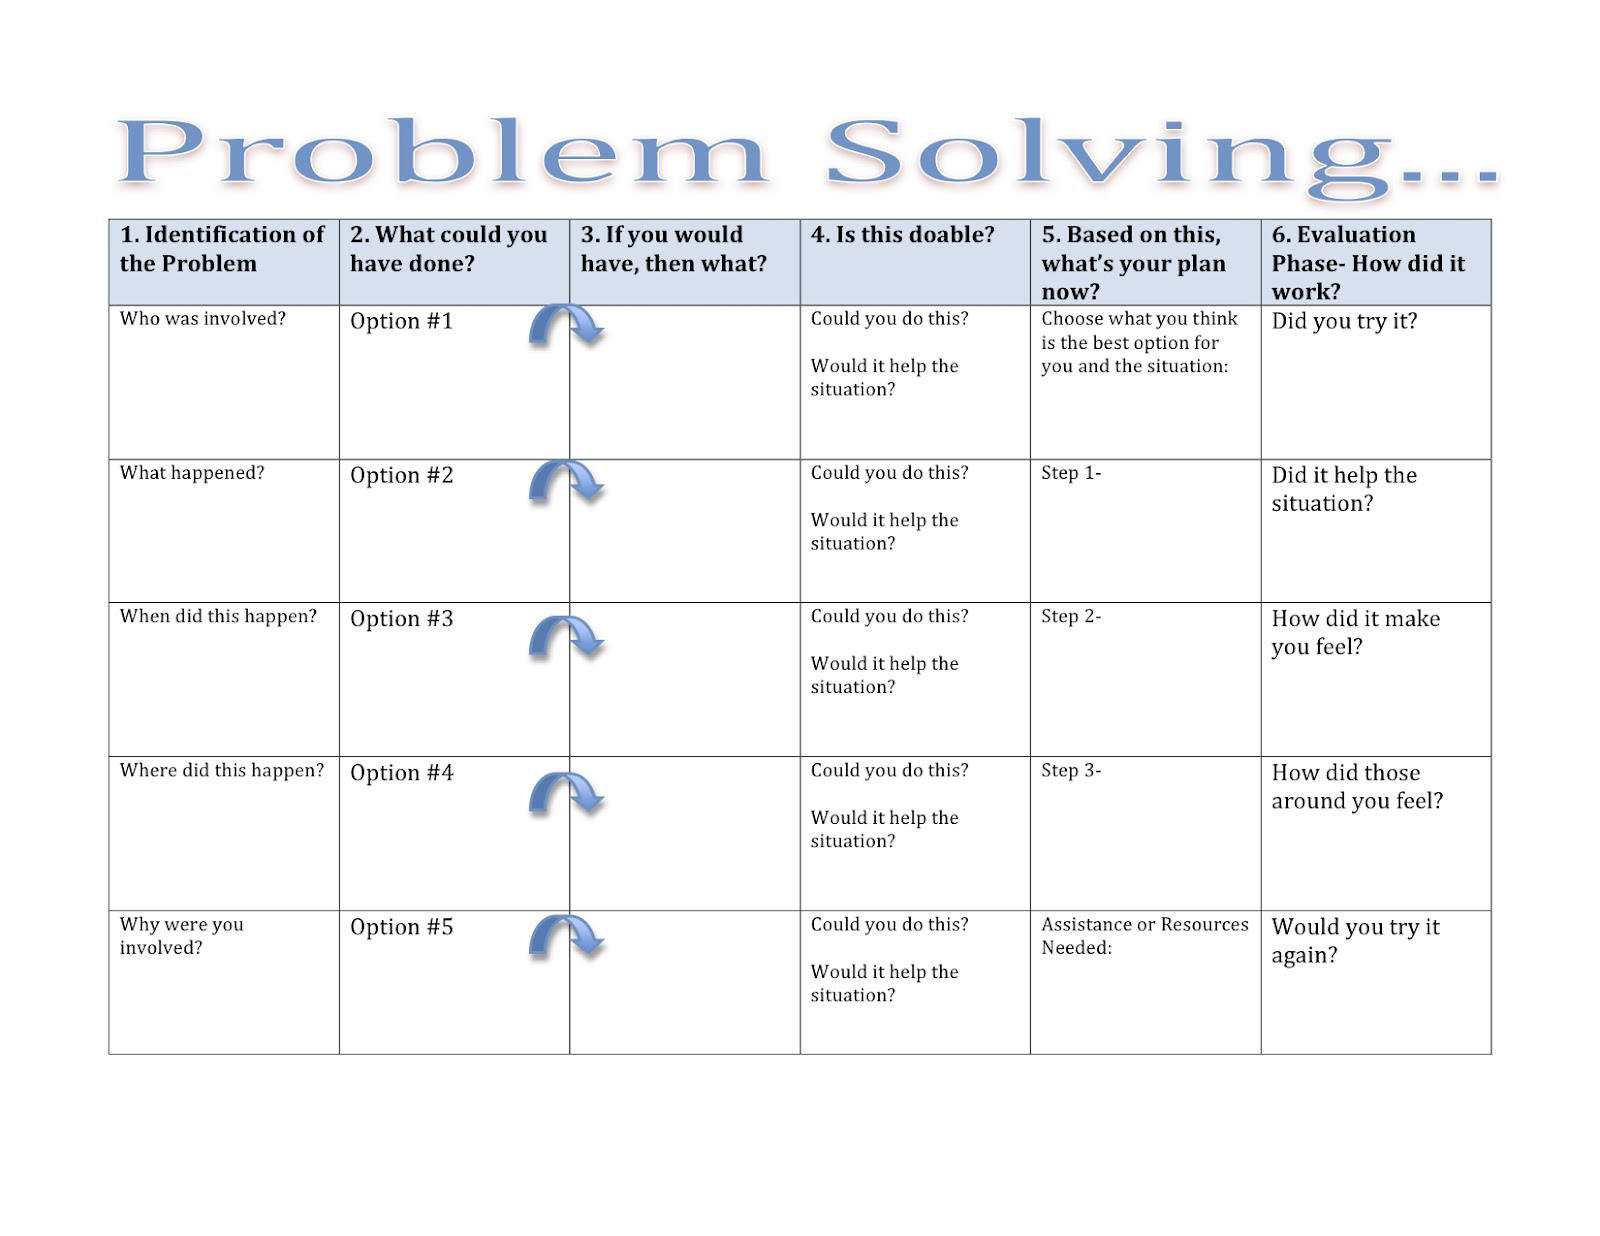 Problem Solving Worksheets For Adults In Speech Therapy | Caroldoey